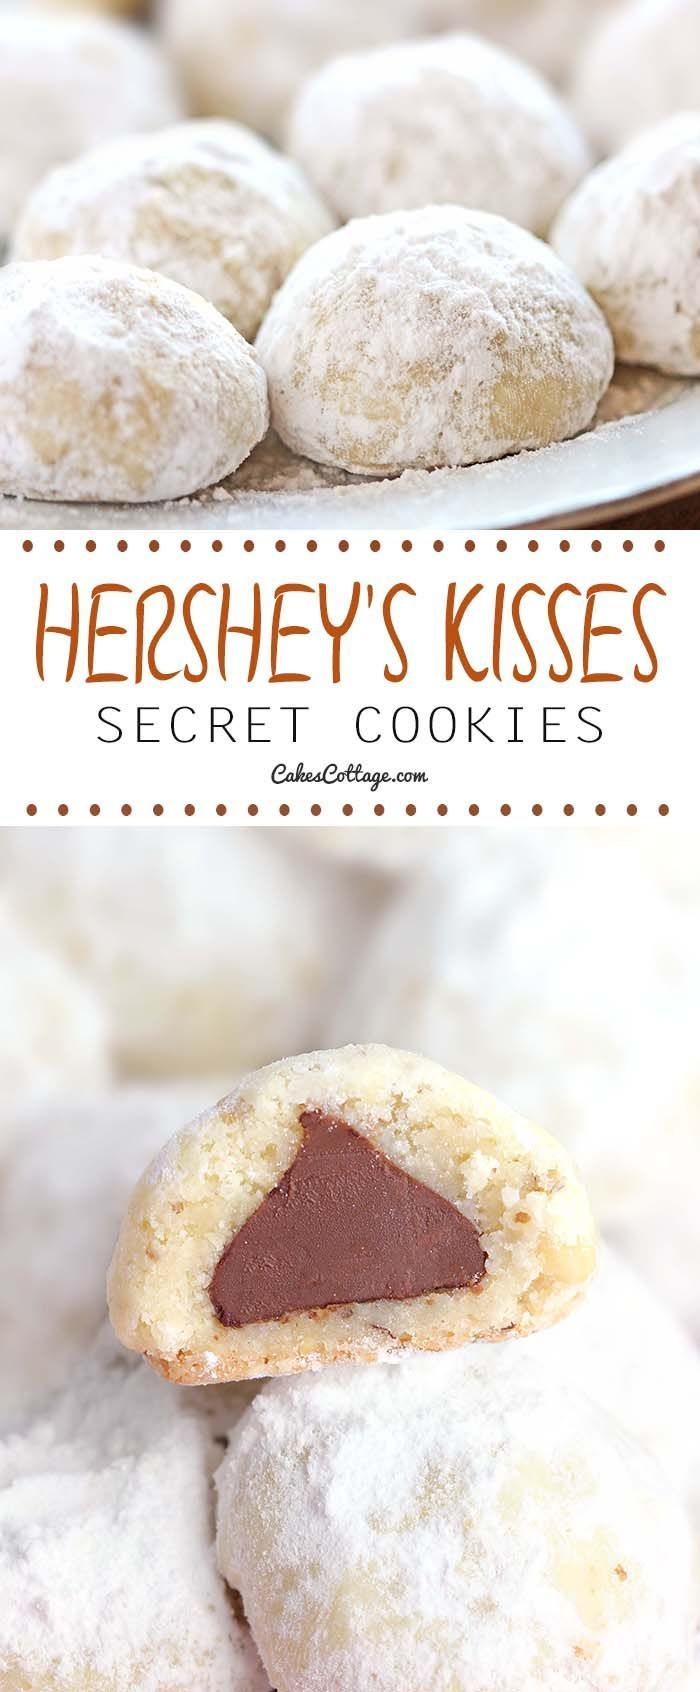 ...a shortbread cookie with a wonderful Hershey's chocolate kiss surprise in the center! Would be fun for Christmas or Valentines Day!